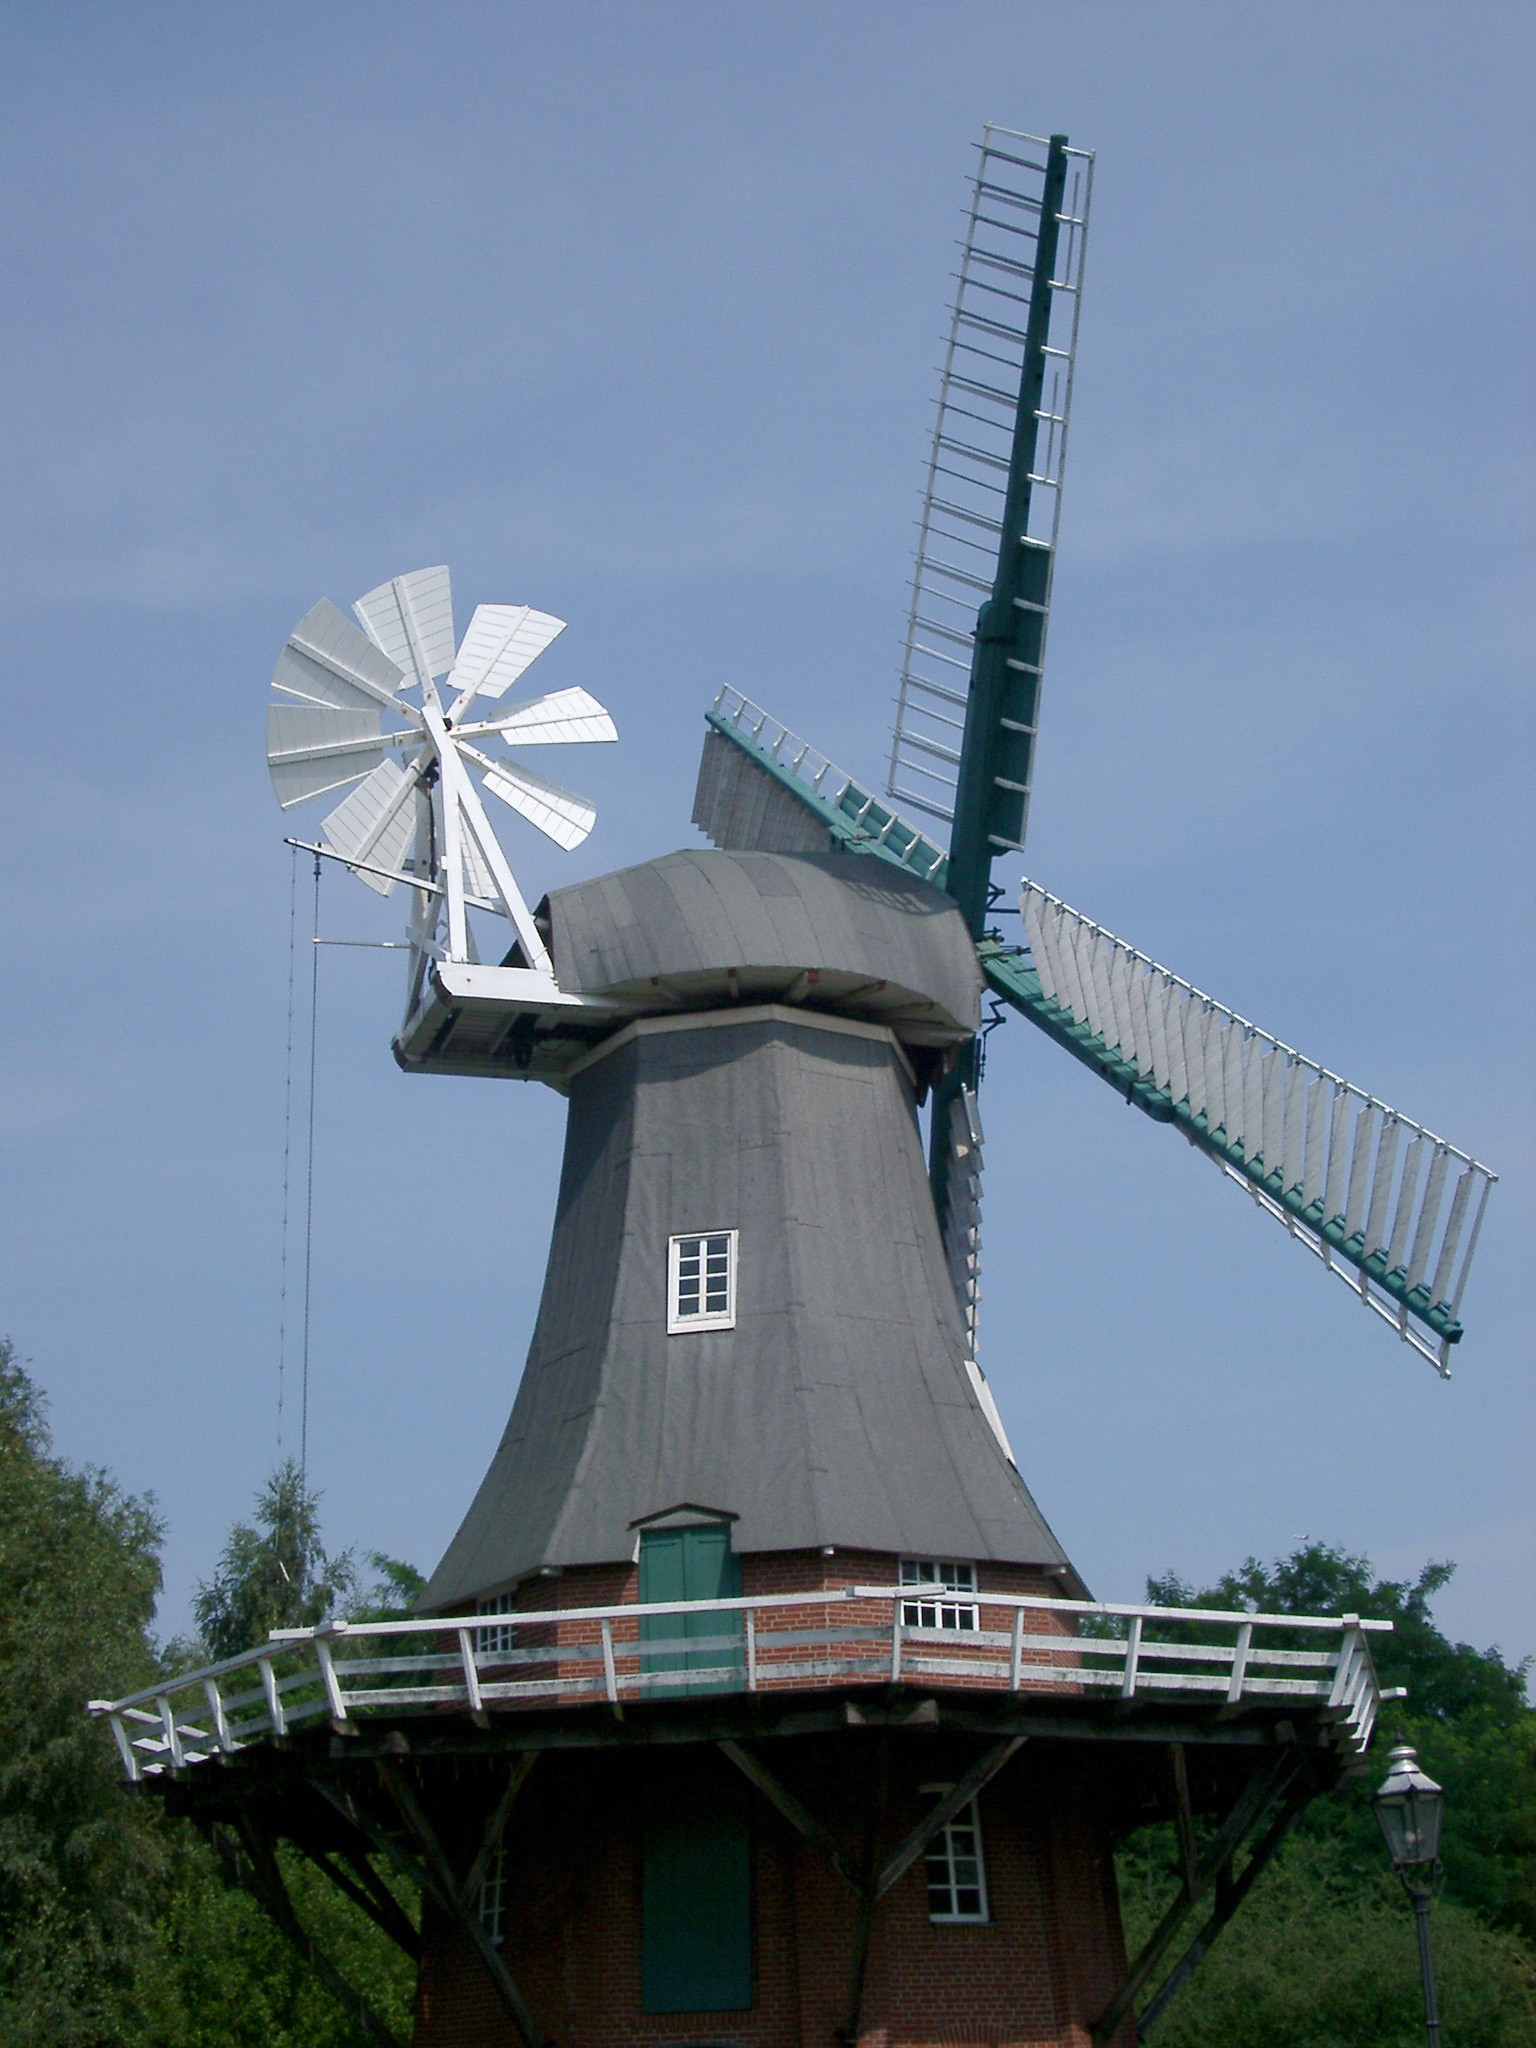 Historic windmill in Berlin with large wooden sails for converting kinetic energy from the wind and a secondary smaller windmill mounted on its side